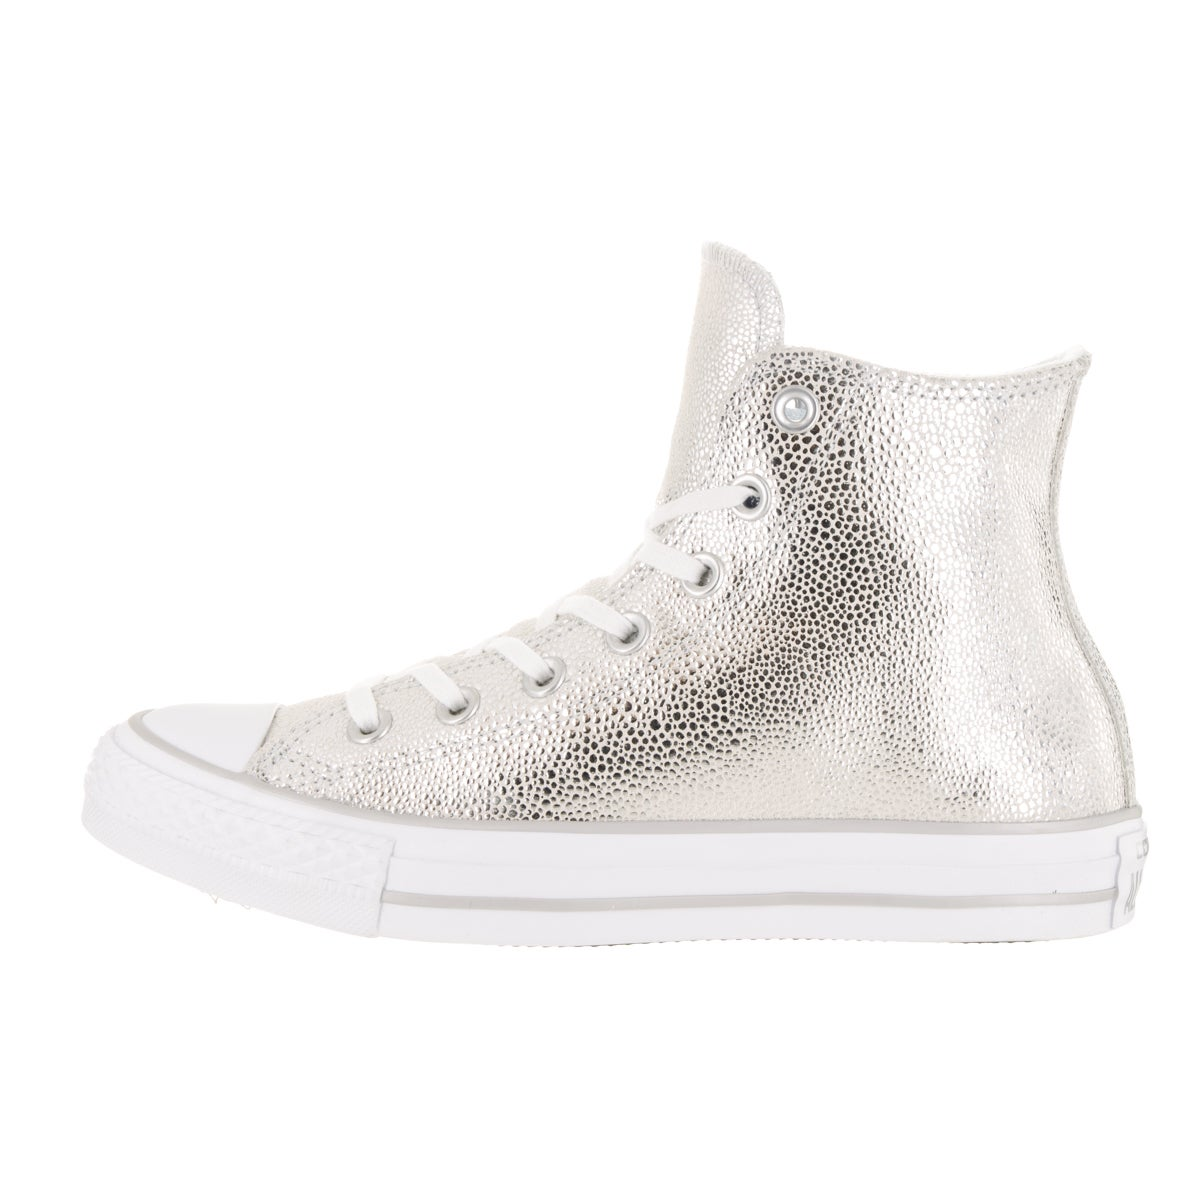 0575f599a4820c Shop Converse Women s Chuck Taylor All Star Stingray Metallic Hi Pure  Silver Basketball Shoe - Free Shipping Today - Overstock - 13344079